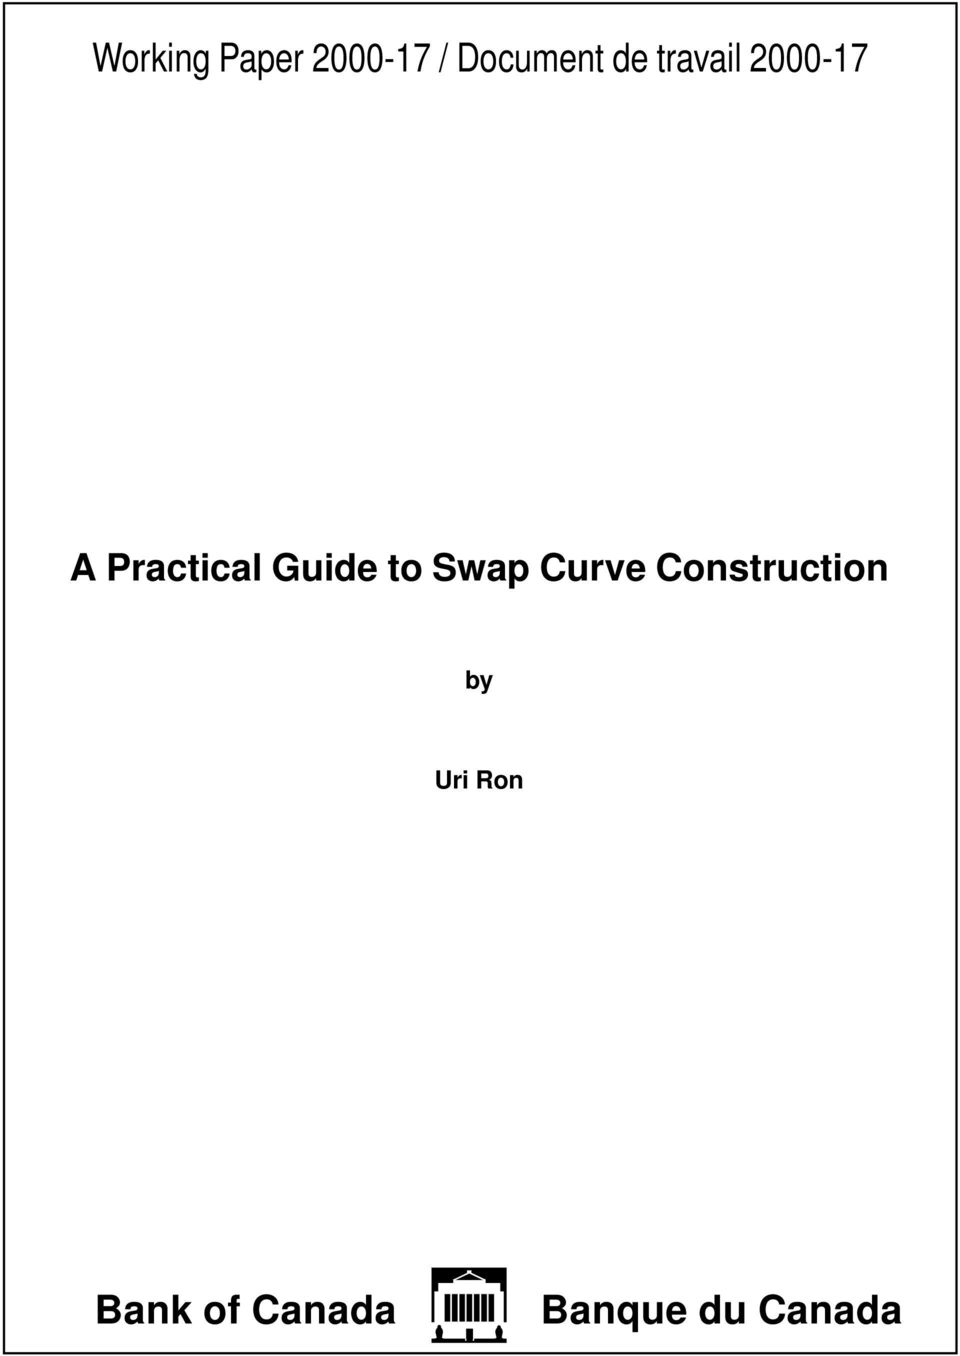 Guide to Swap Curve Construction